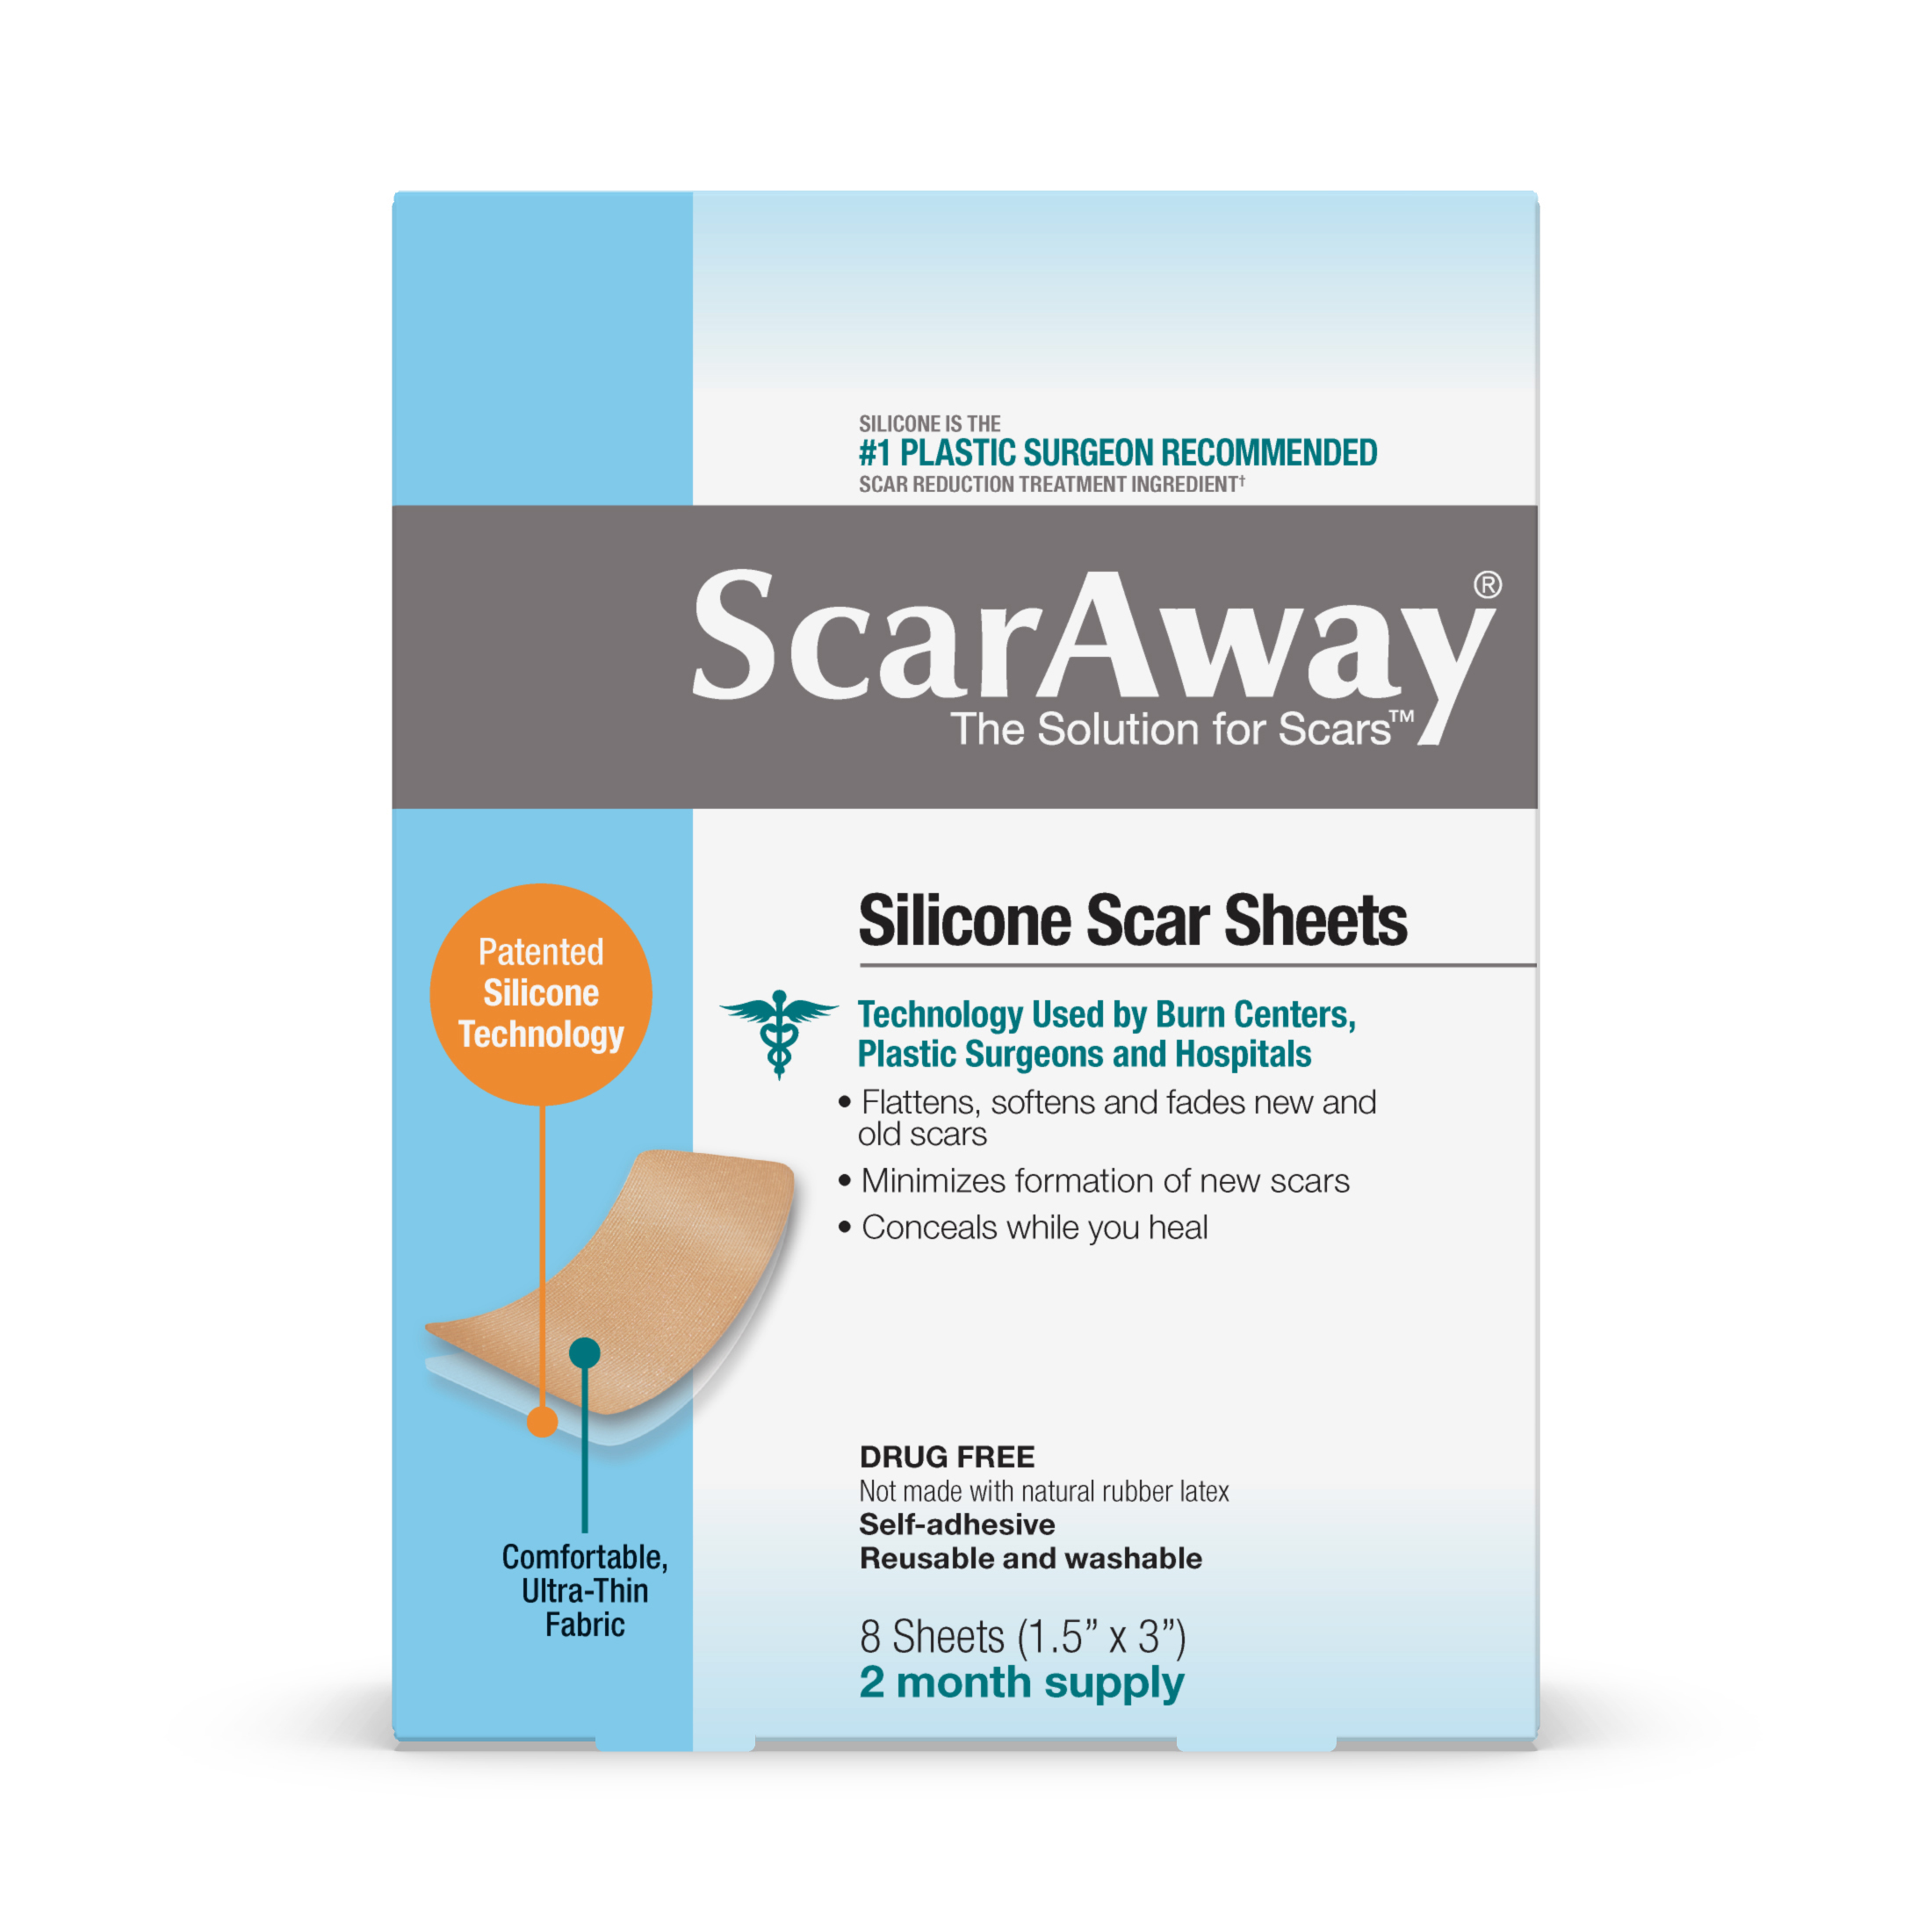 ScarAway Silicone Scar Sheets, 8 Sheets, 2 Month Supply